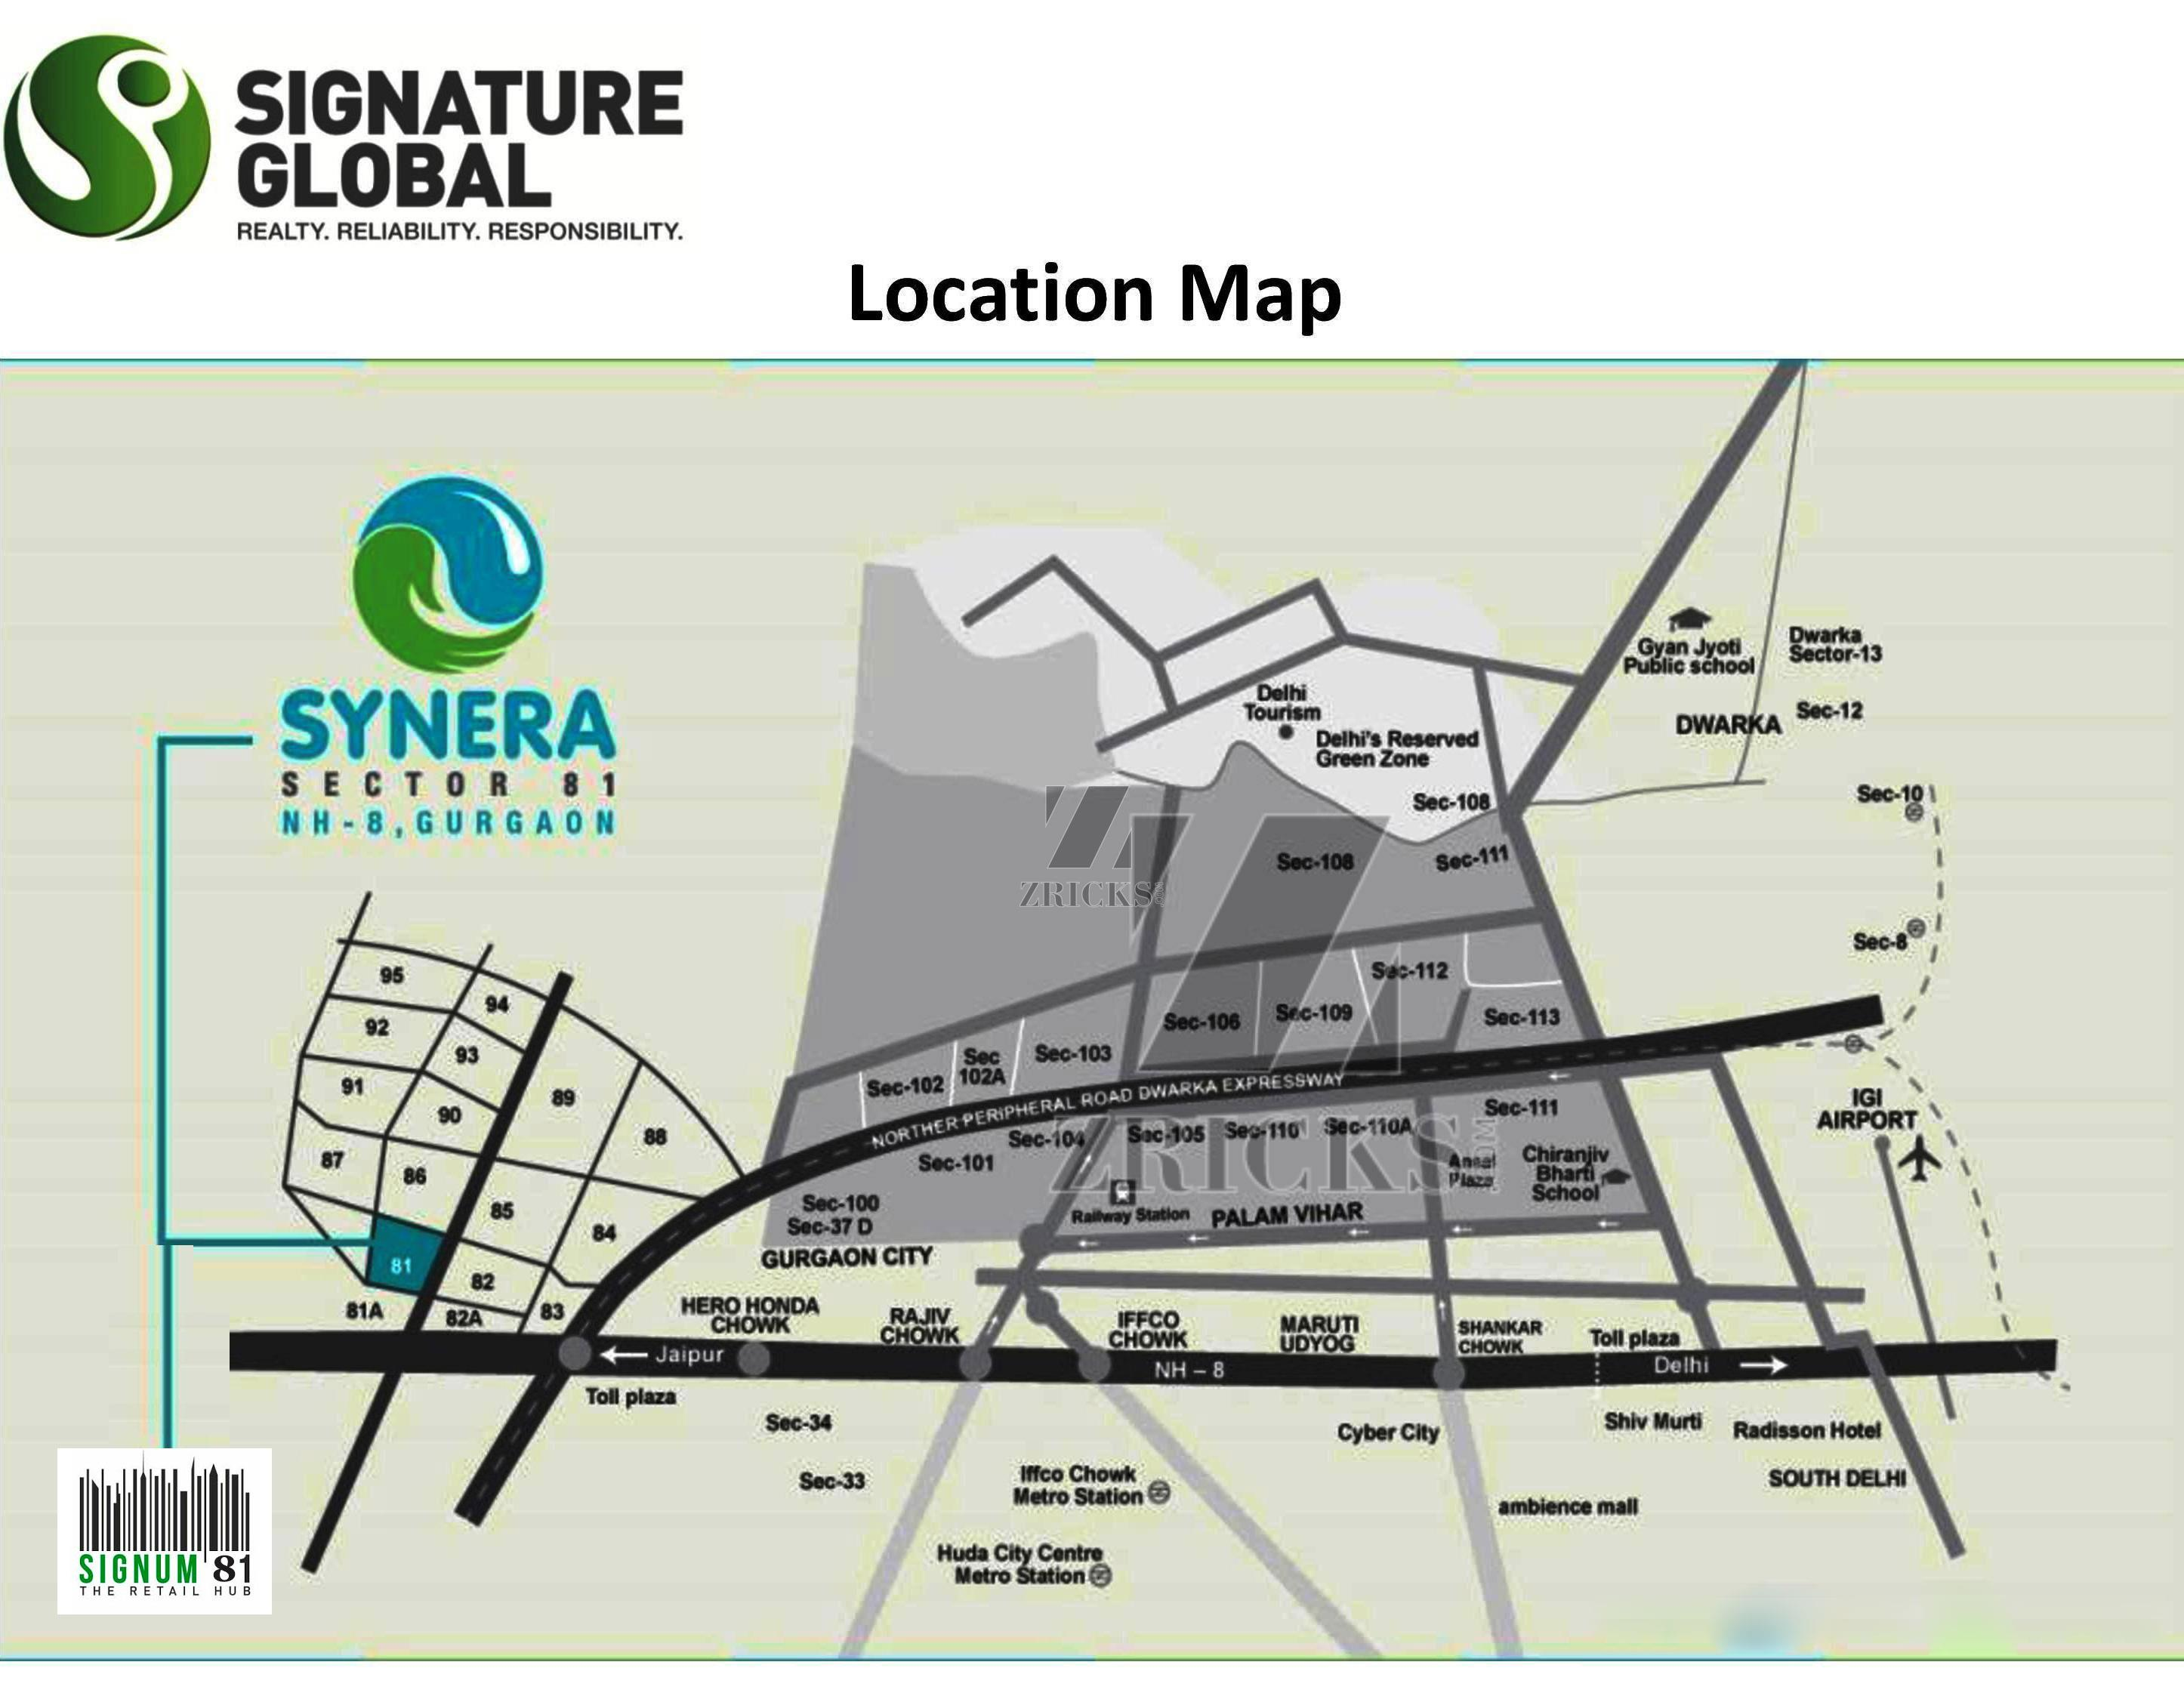 Click on any of the pictures to see the airport diagram - The Signature Global Signum 81 Location Map Click Here To View